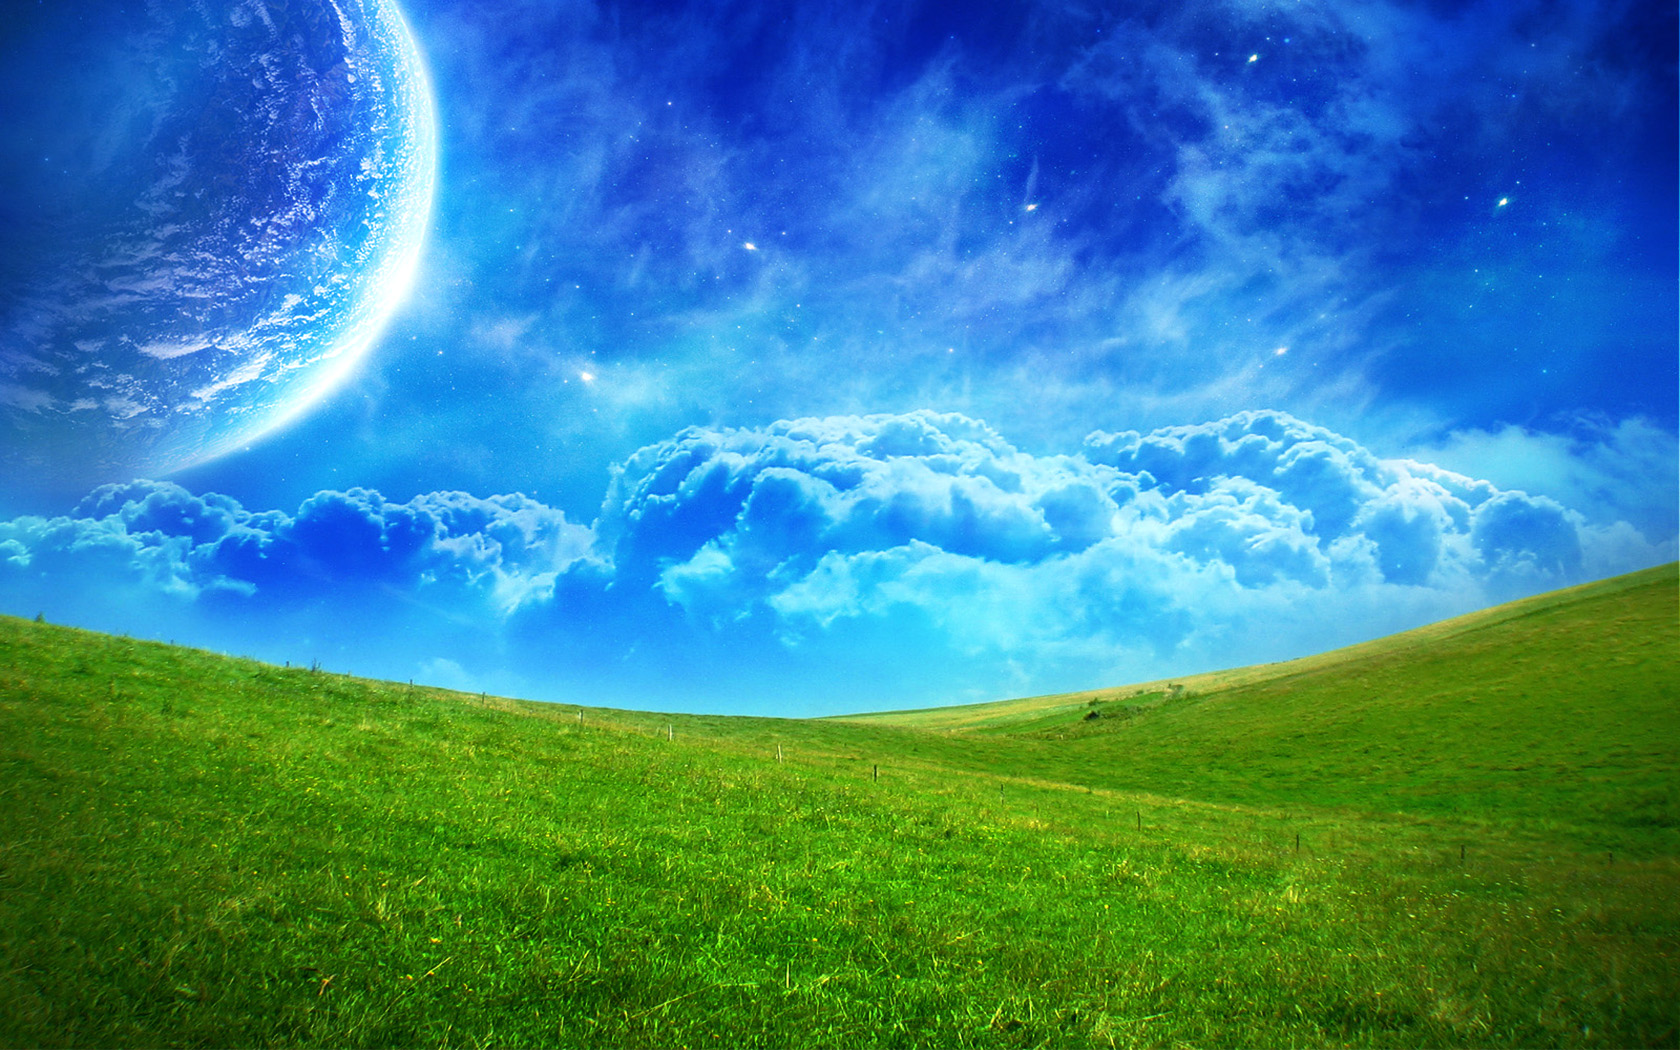 Earth - A Dreamy World  - Landscape - Moon - Clouds Wallpaper